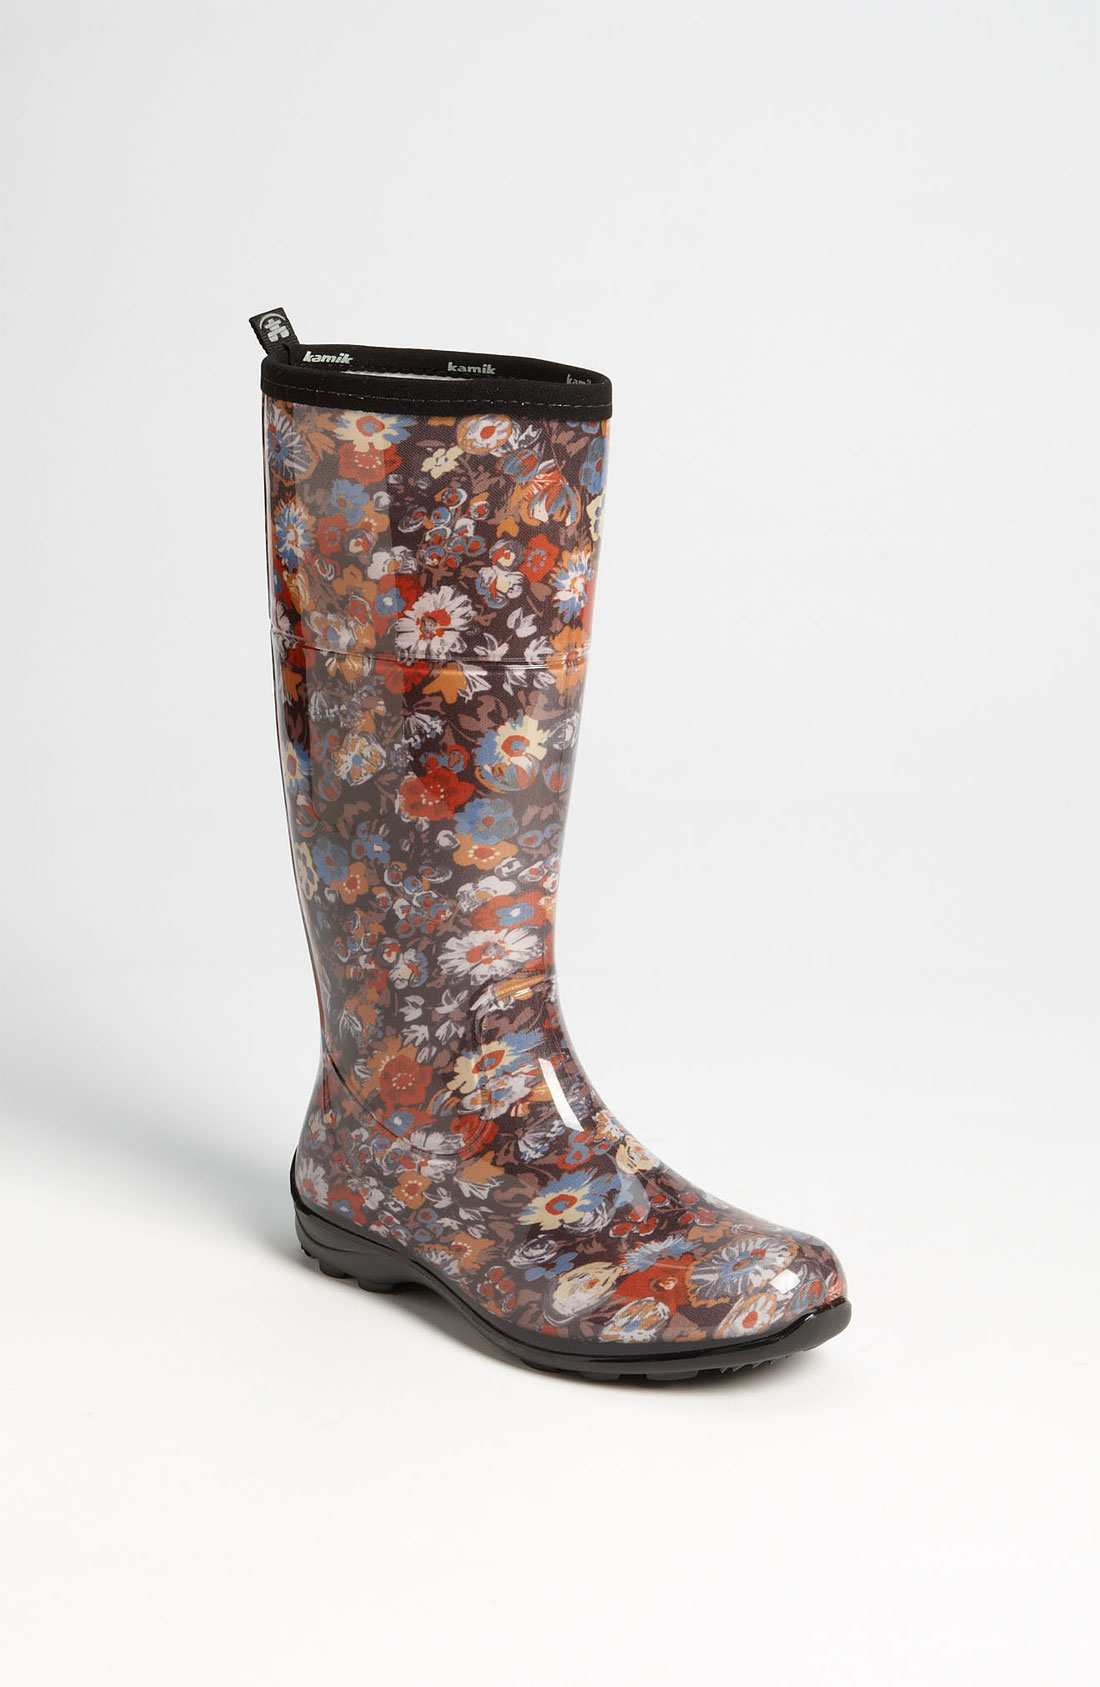 Fantastic Moreover, Consumers Changing Lifestyles, Preference, Increasing Demand Of Men And Womens Versatile  The Key Participants In The Global Rain Boots Industry Include Hunter Boot Limited, Aigle Footwear Company, Kamik, Bata